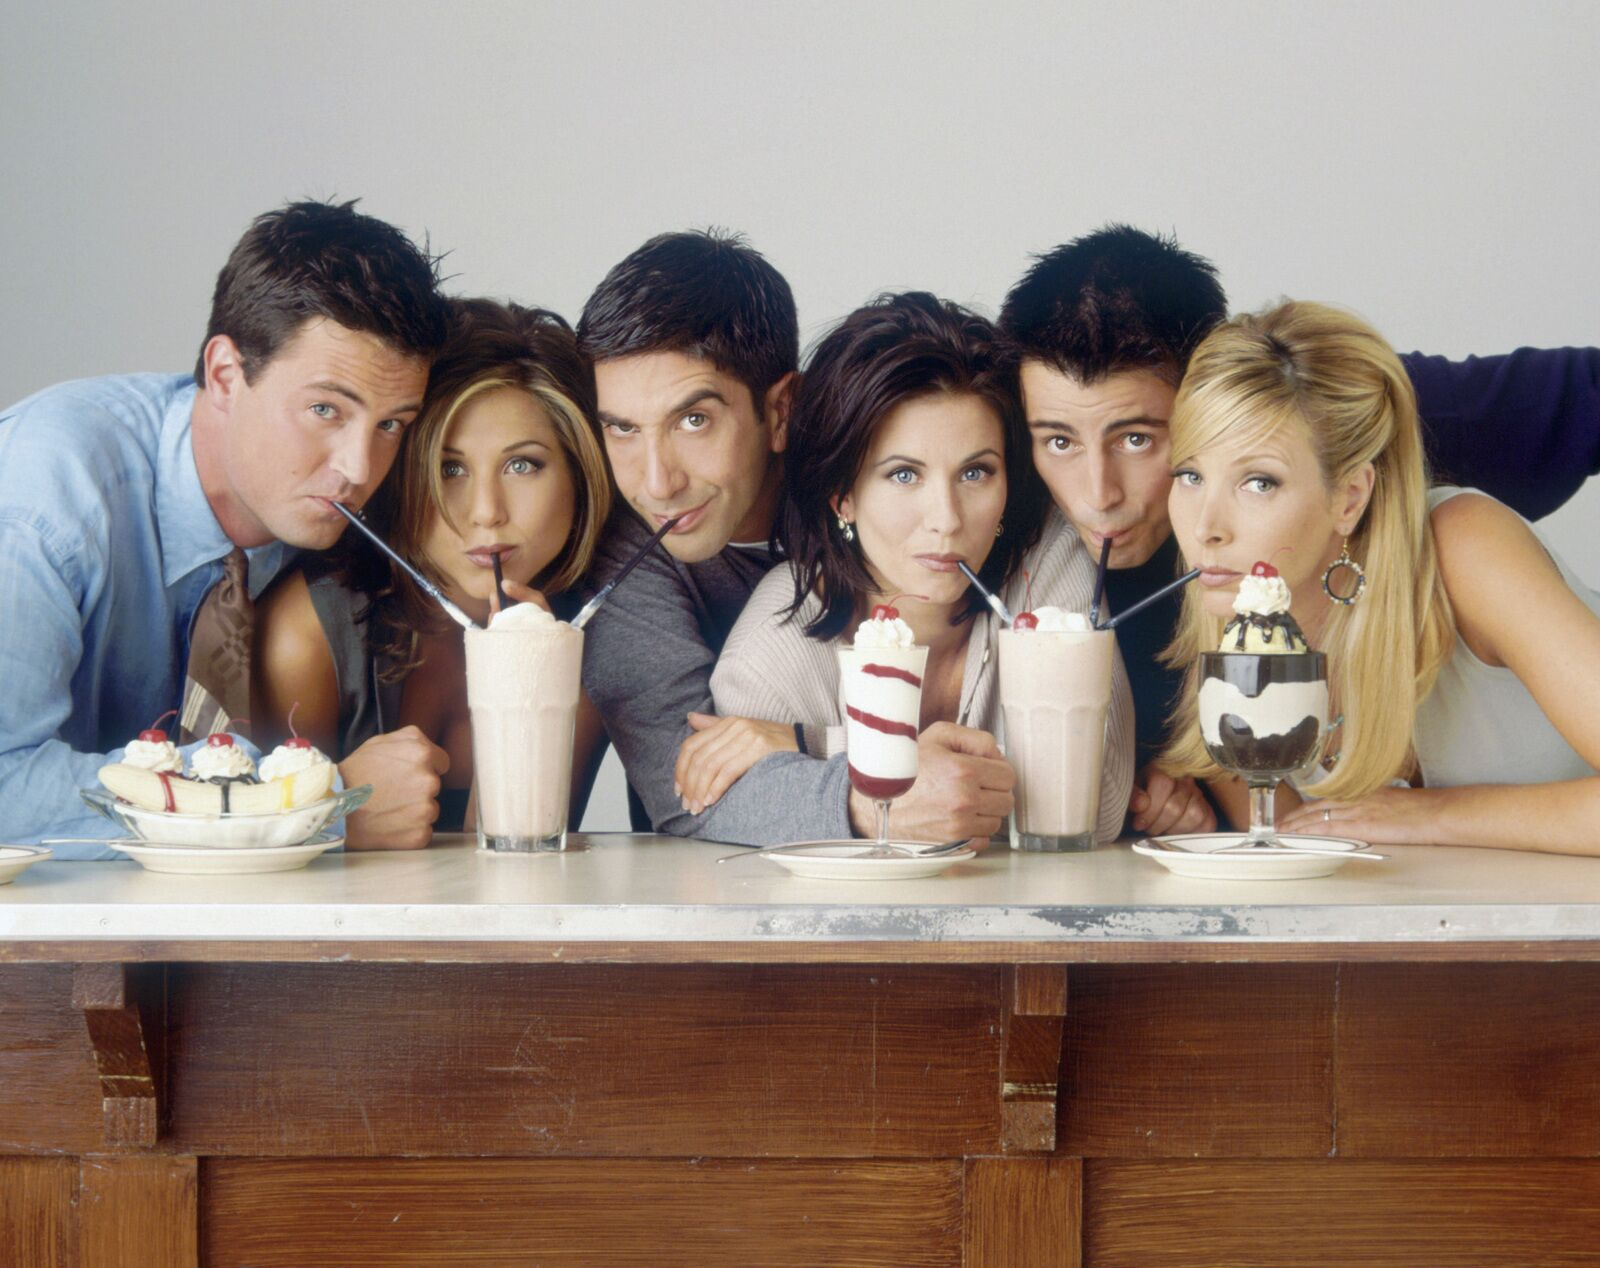 Who would be cast in Friends today?